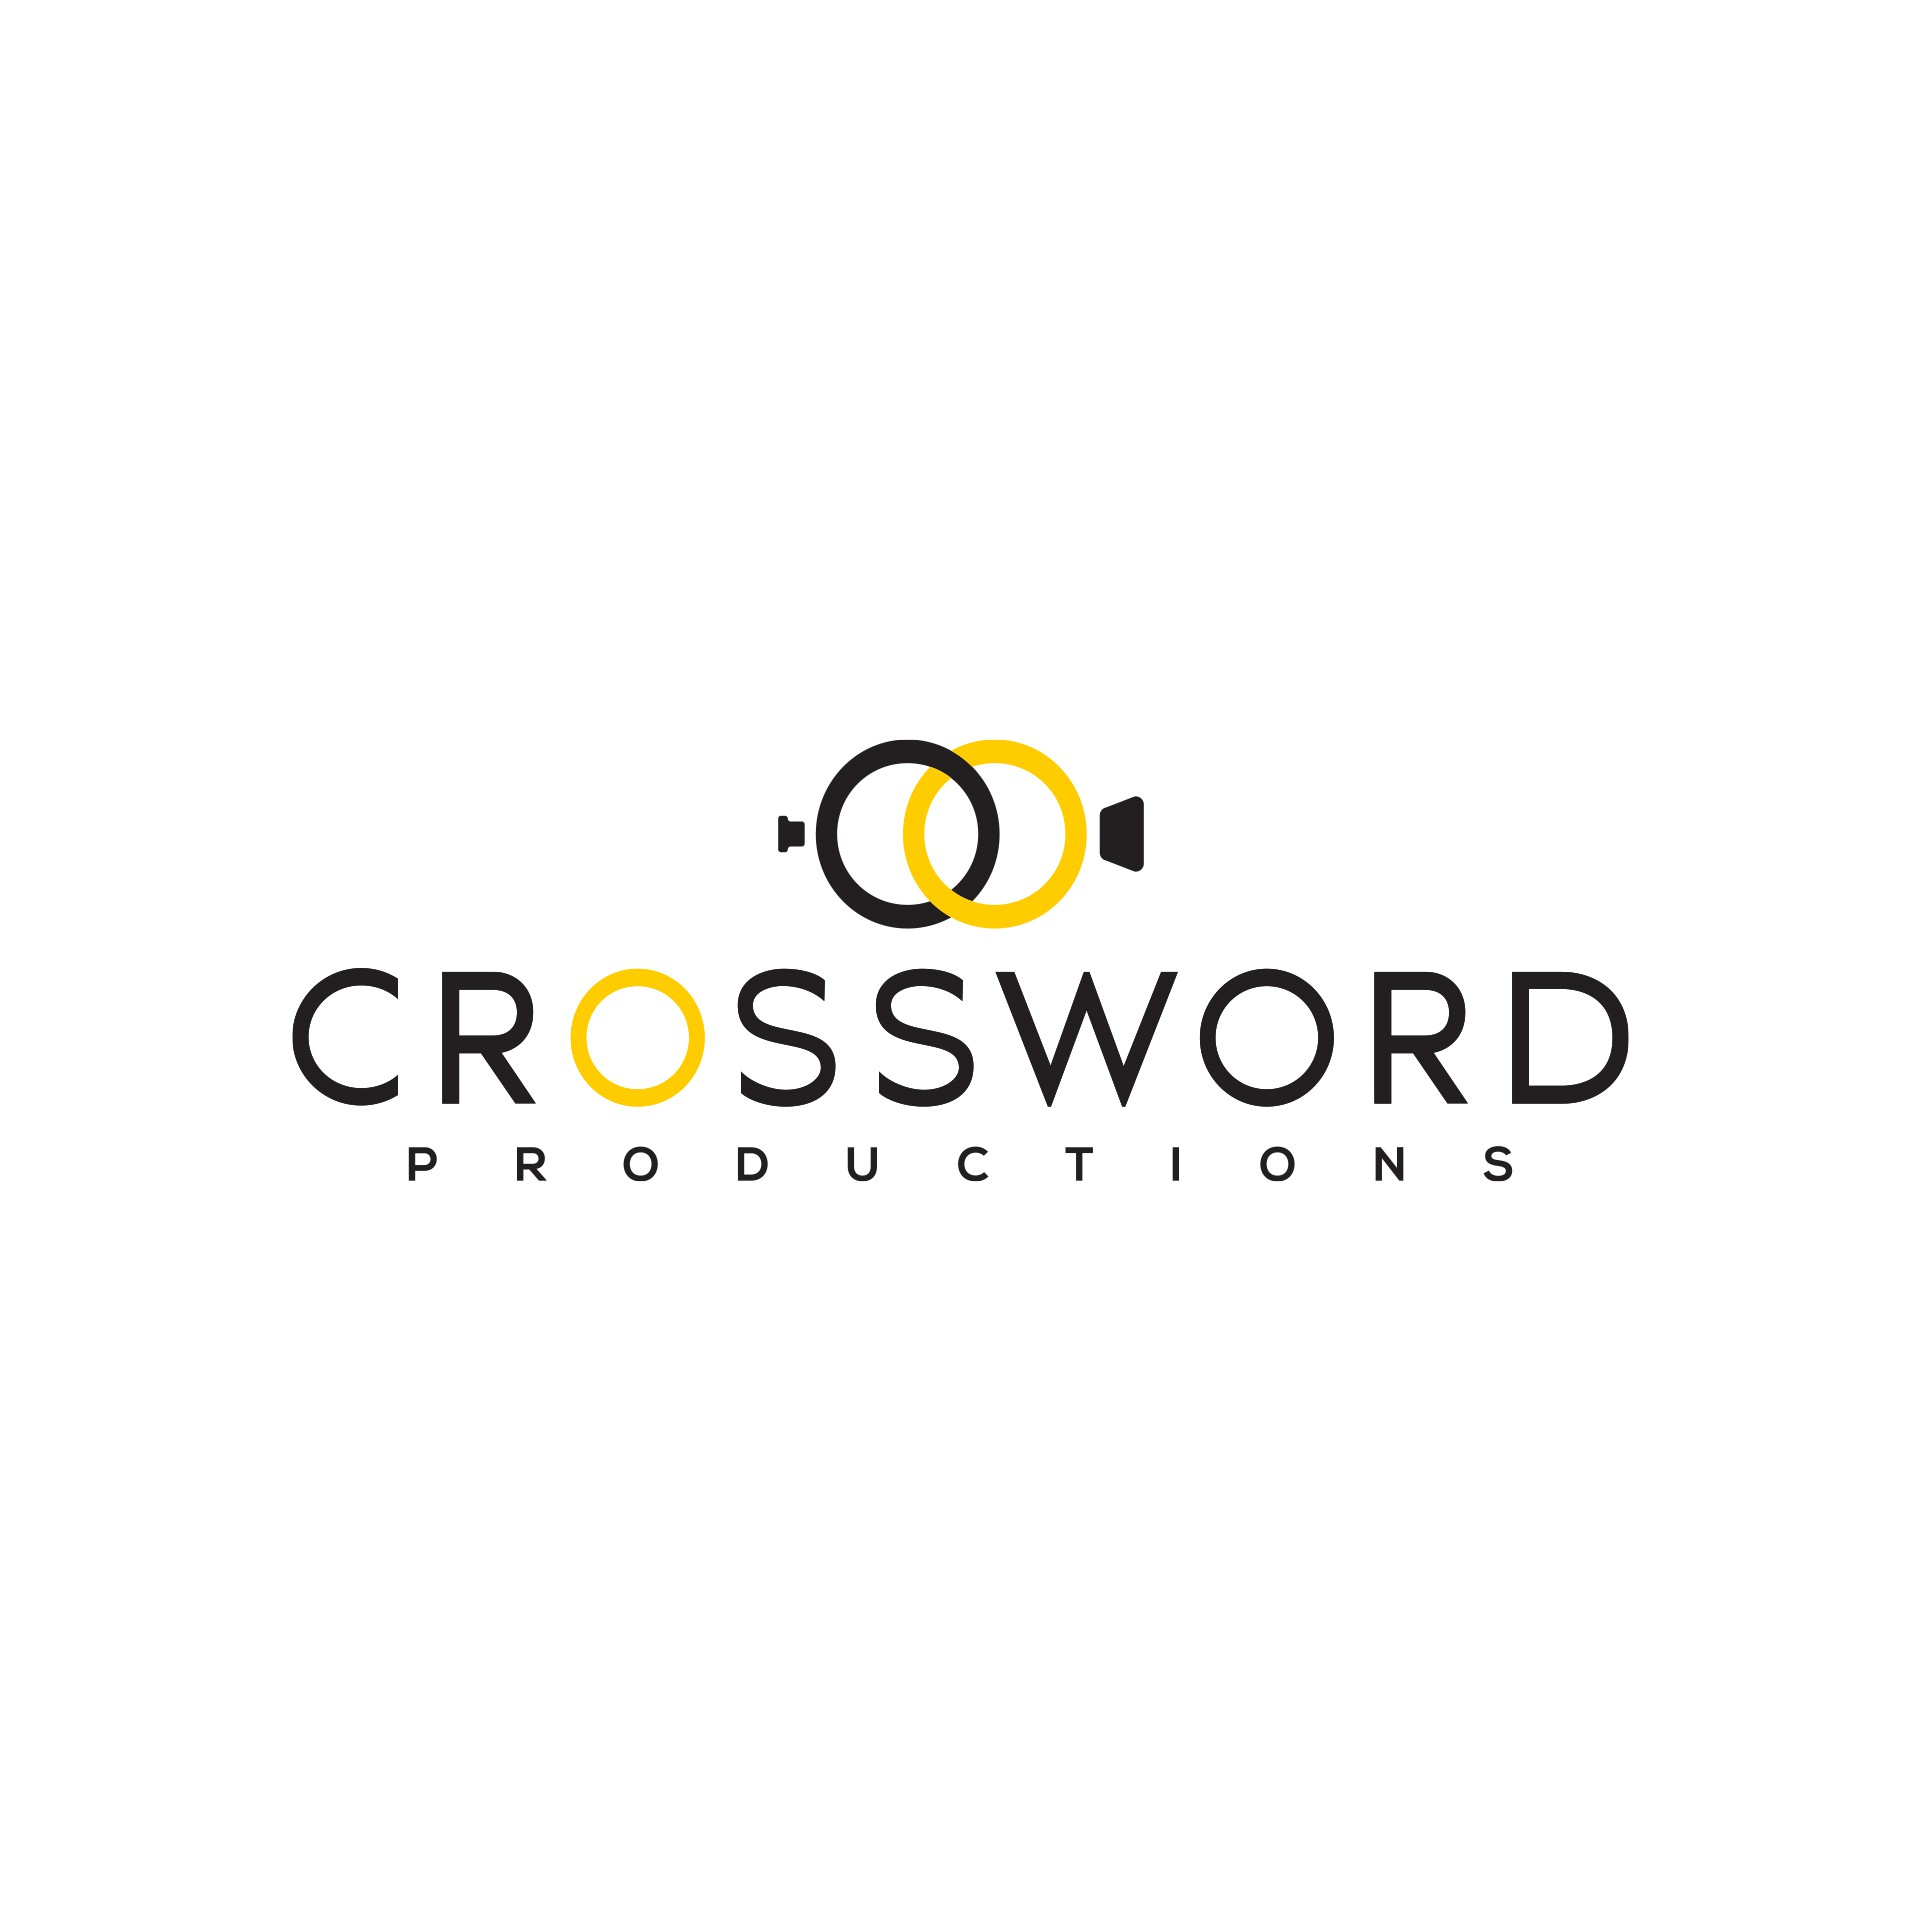 Strong crossculture logo for Asian media company